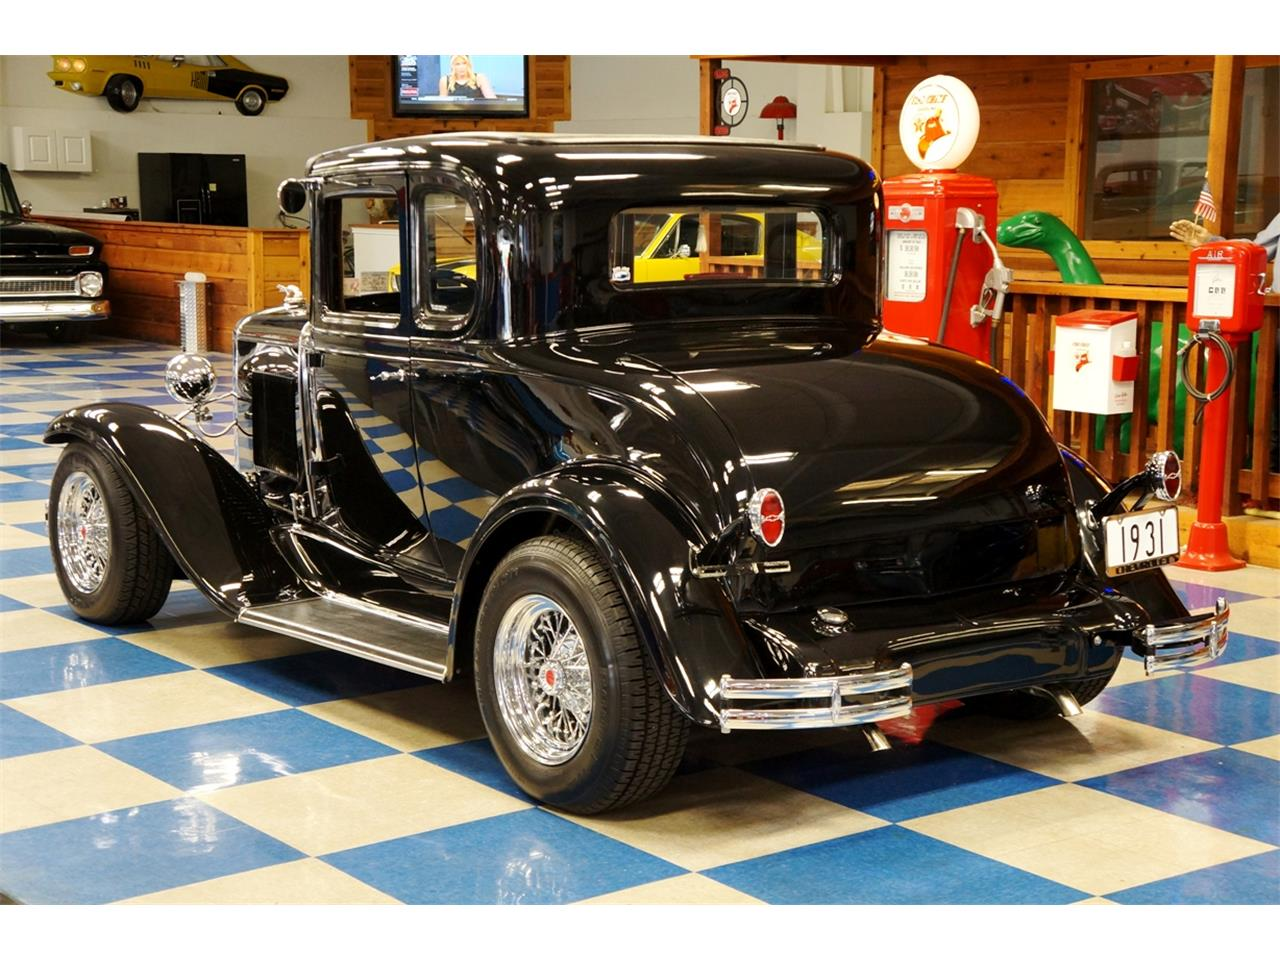 Large Picture of Classic '31 Chevrolet Coupe - $42,900.00 - KQDD